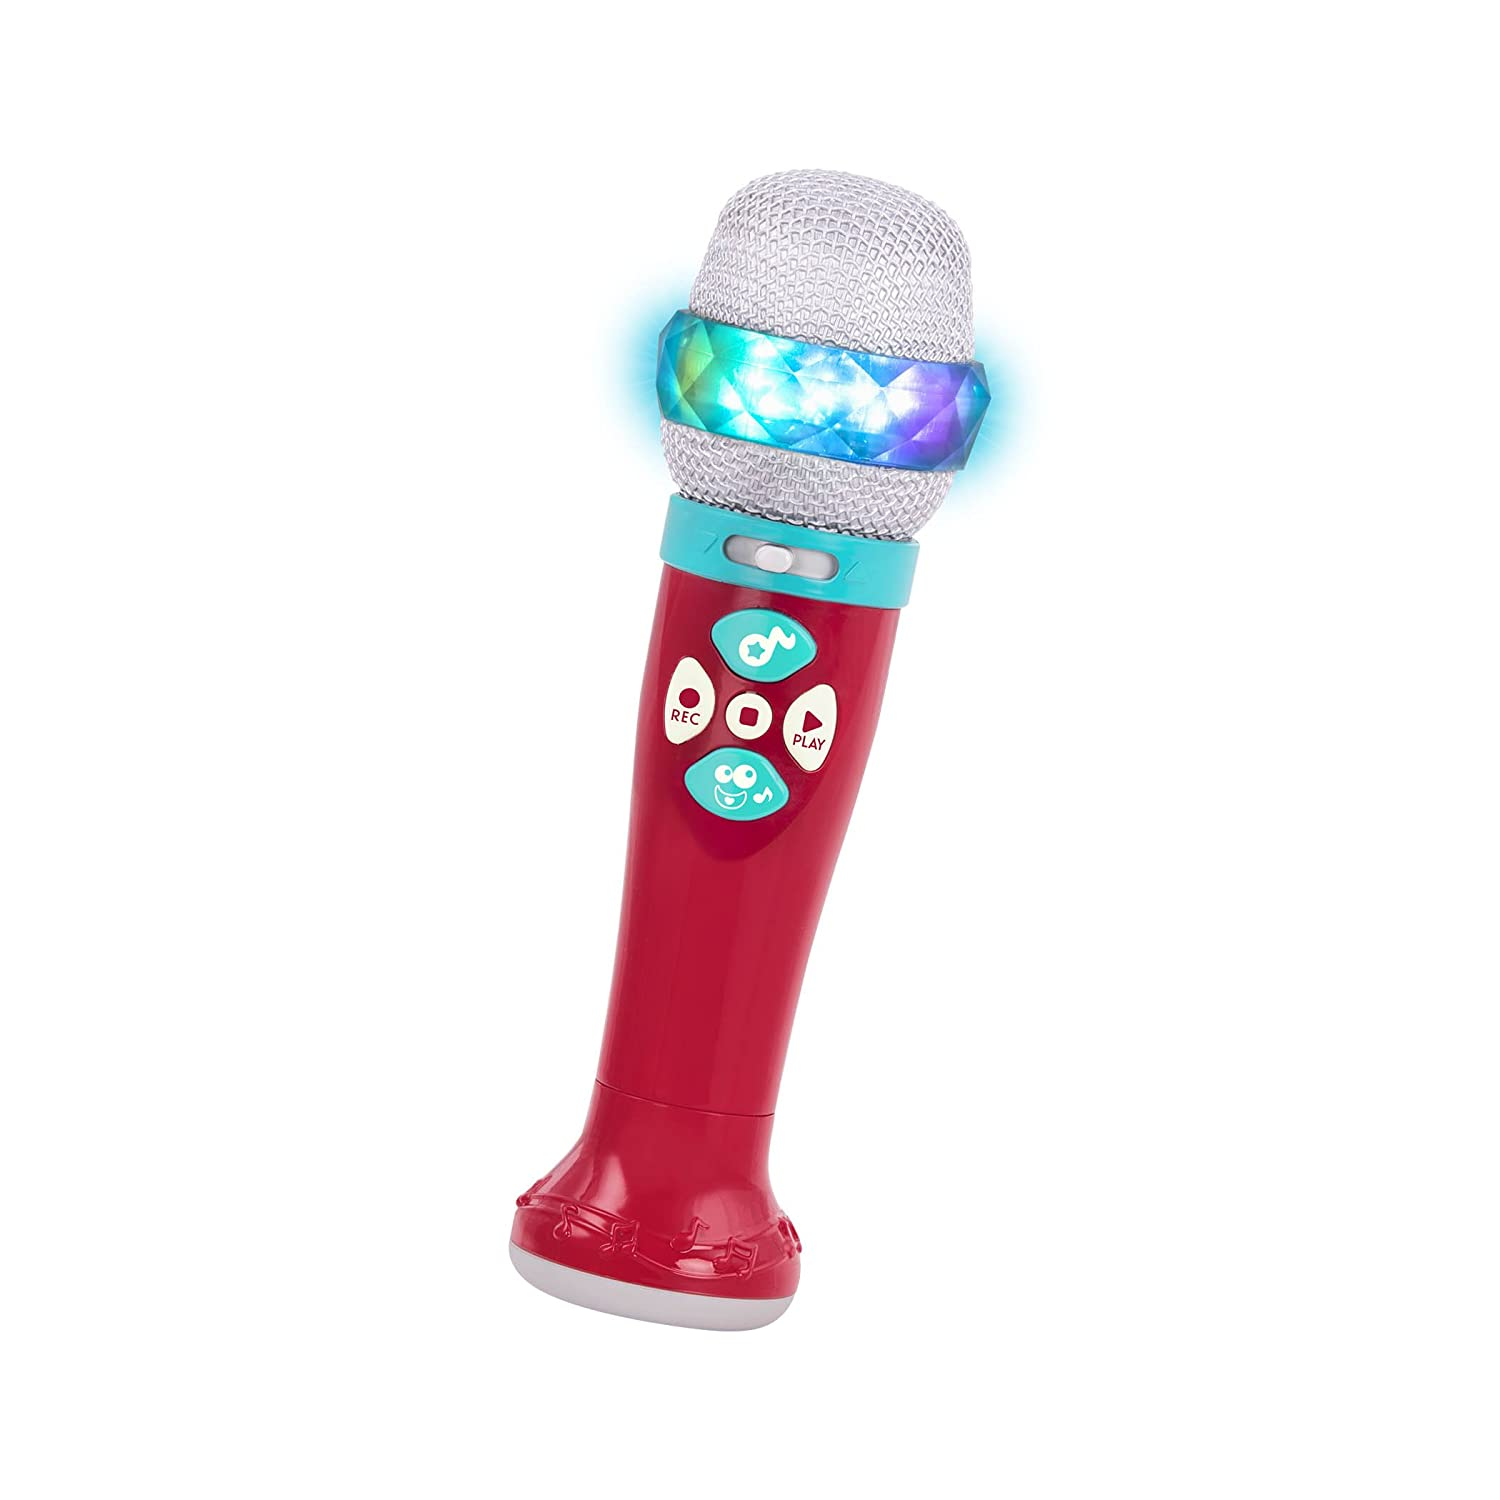 Battat – Musical Light Show Microphone – Light-Up Sing-Along Mic with 5 Songs and Record Functions for Kids 2 Years + (Bluetooth) Branford LTD BT2523Z